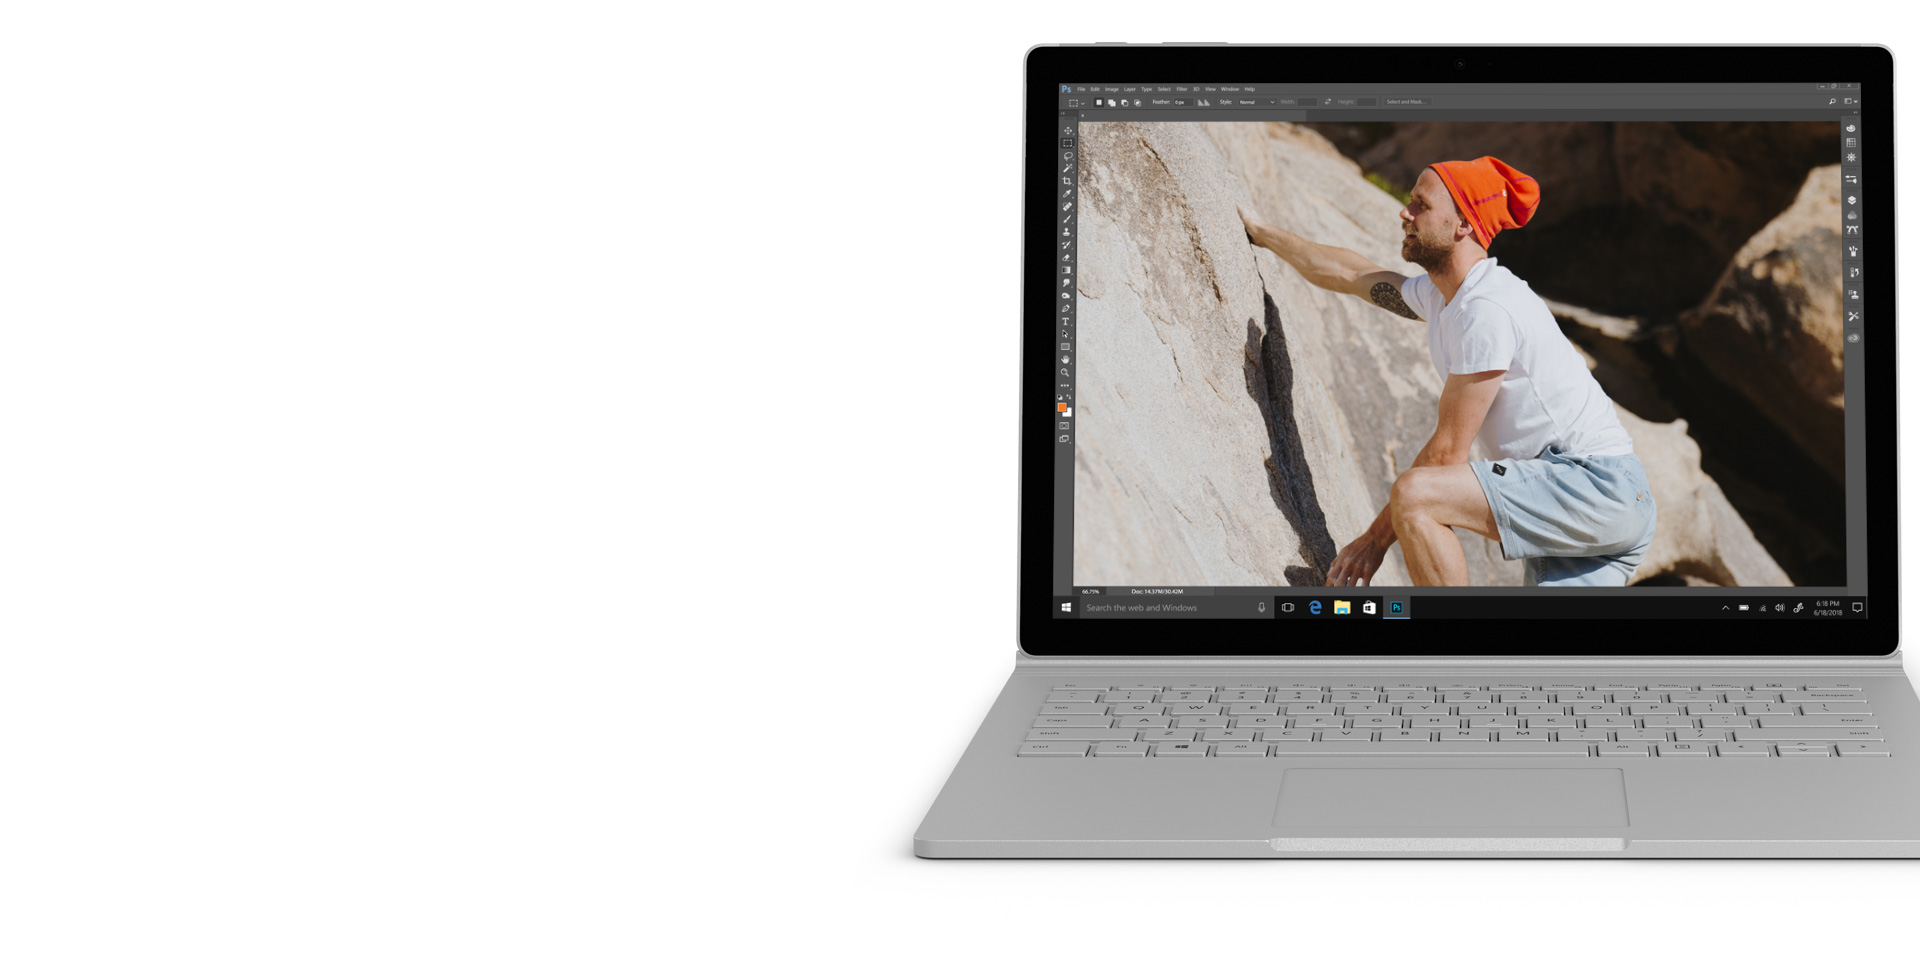 عرض Adobe Photoshop على جهاز Surface Book 2